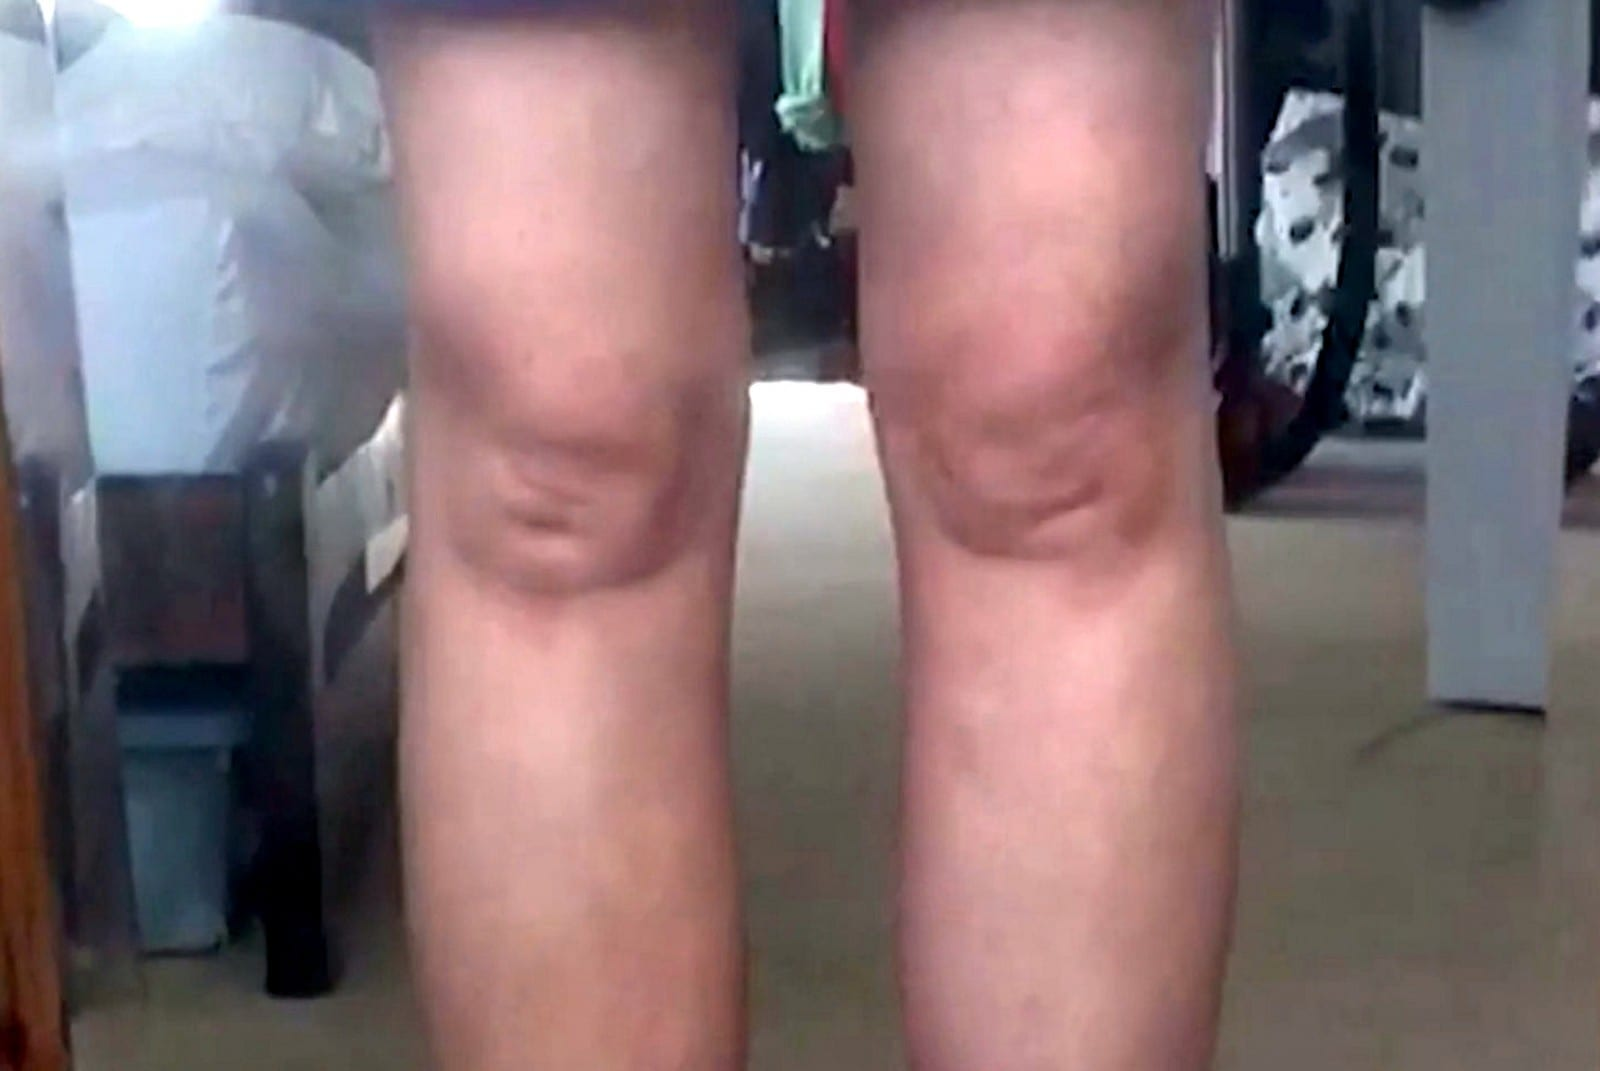 'I've Got Them Out At Parties Before' – Woman Has Knees That Resemble Both Mitchell Brothers!